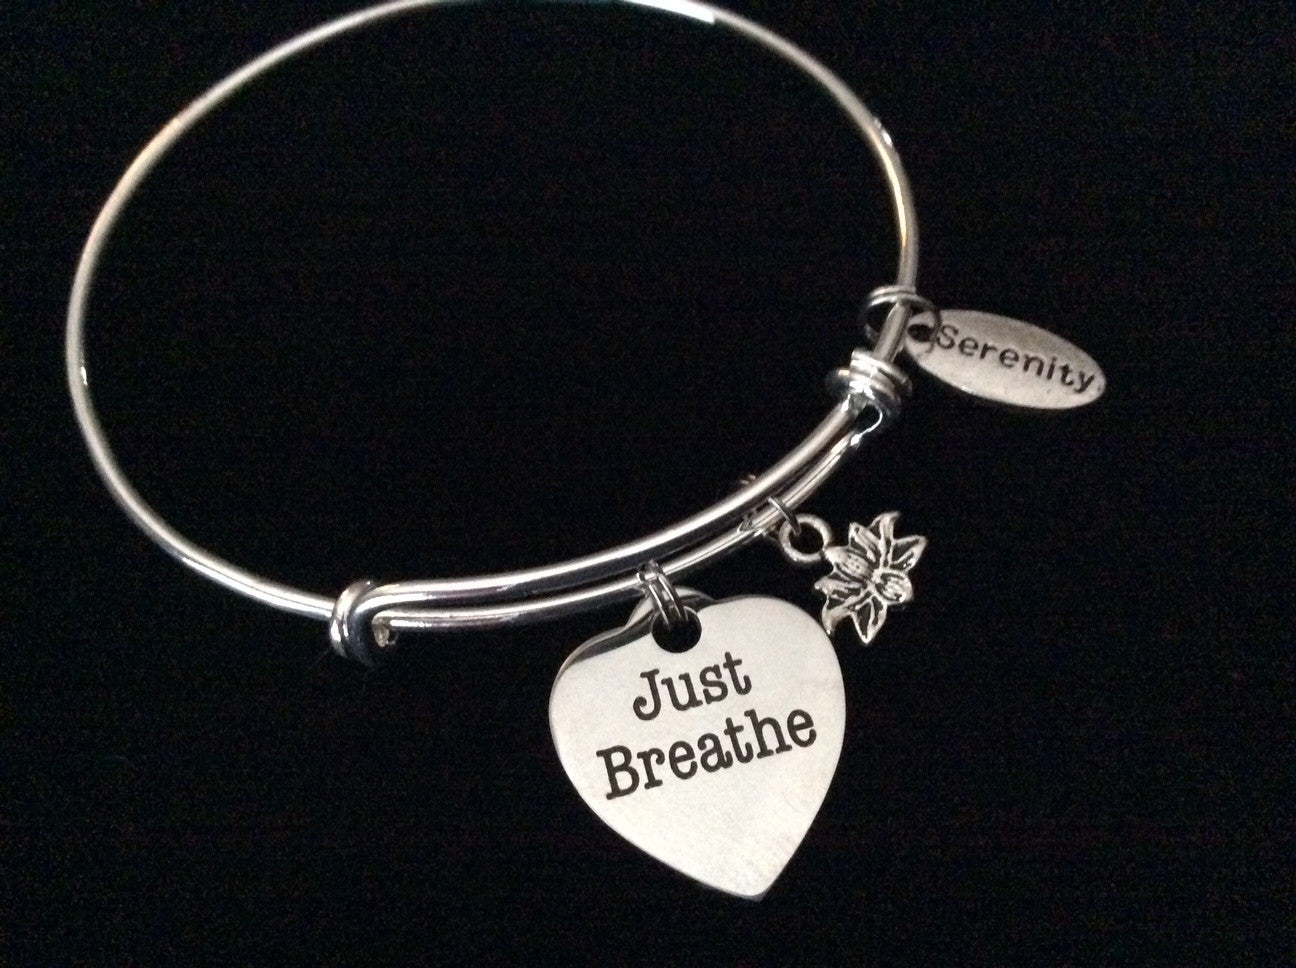 bangles products steel spirit bracelets bracelet charm my stainless wire firefighter bangle fireman soul adjustable